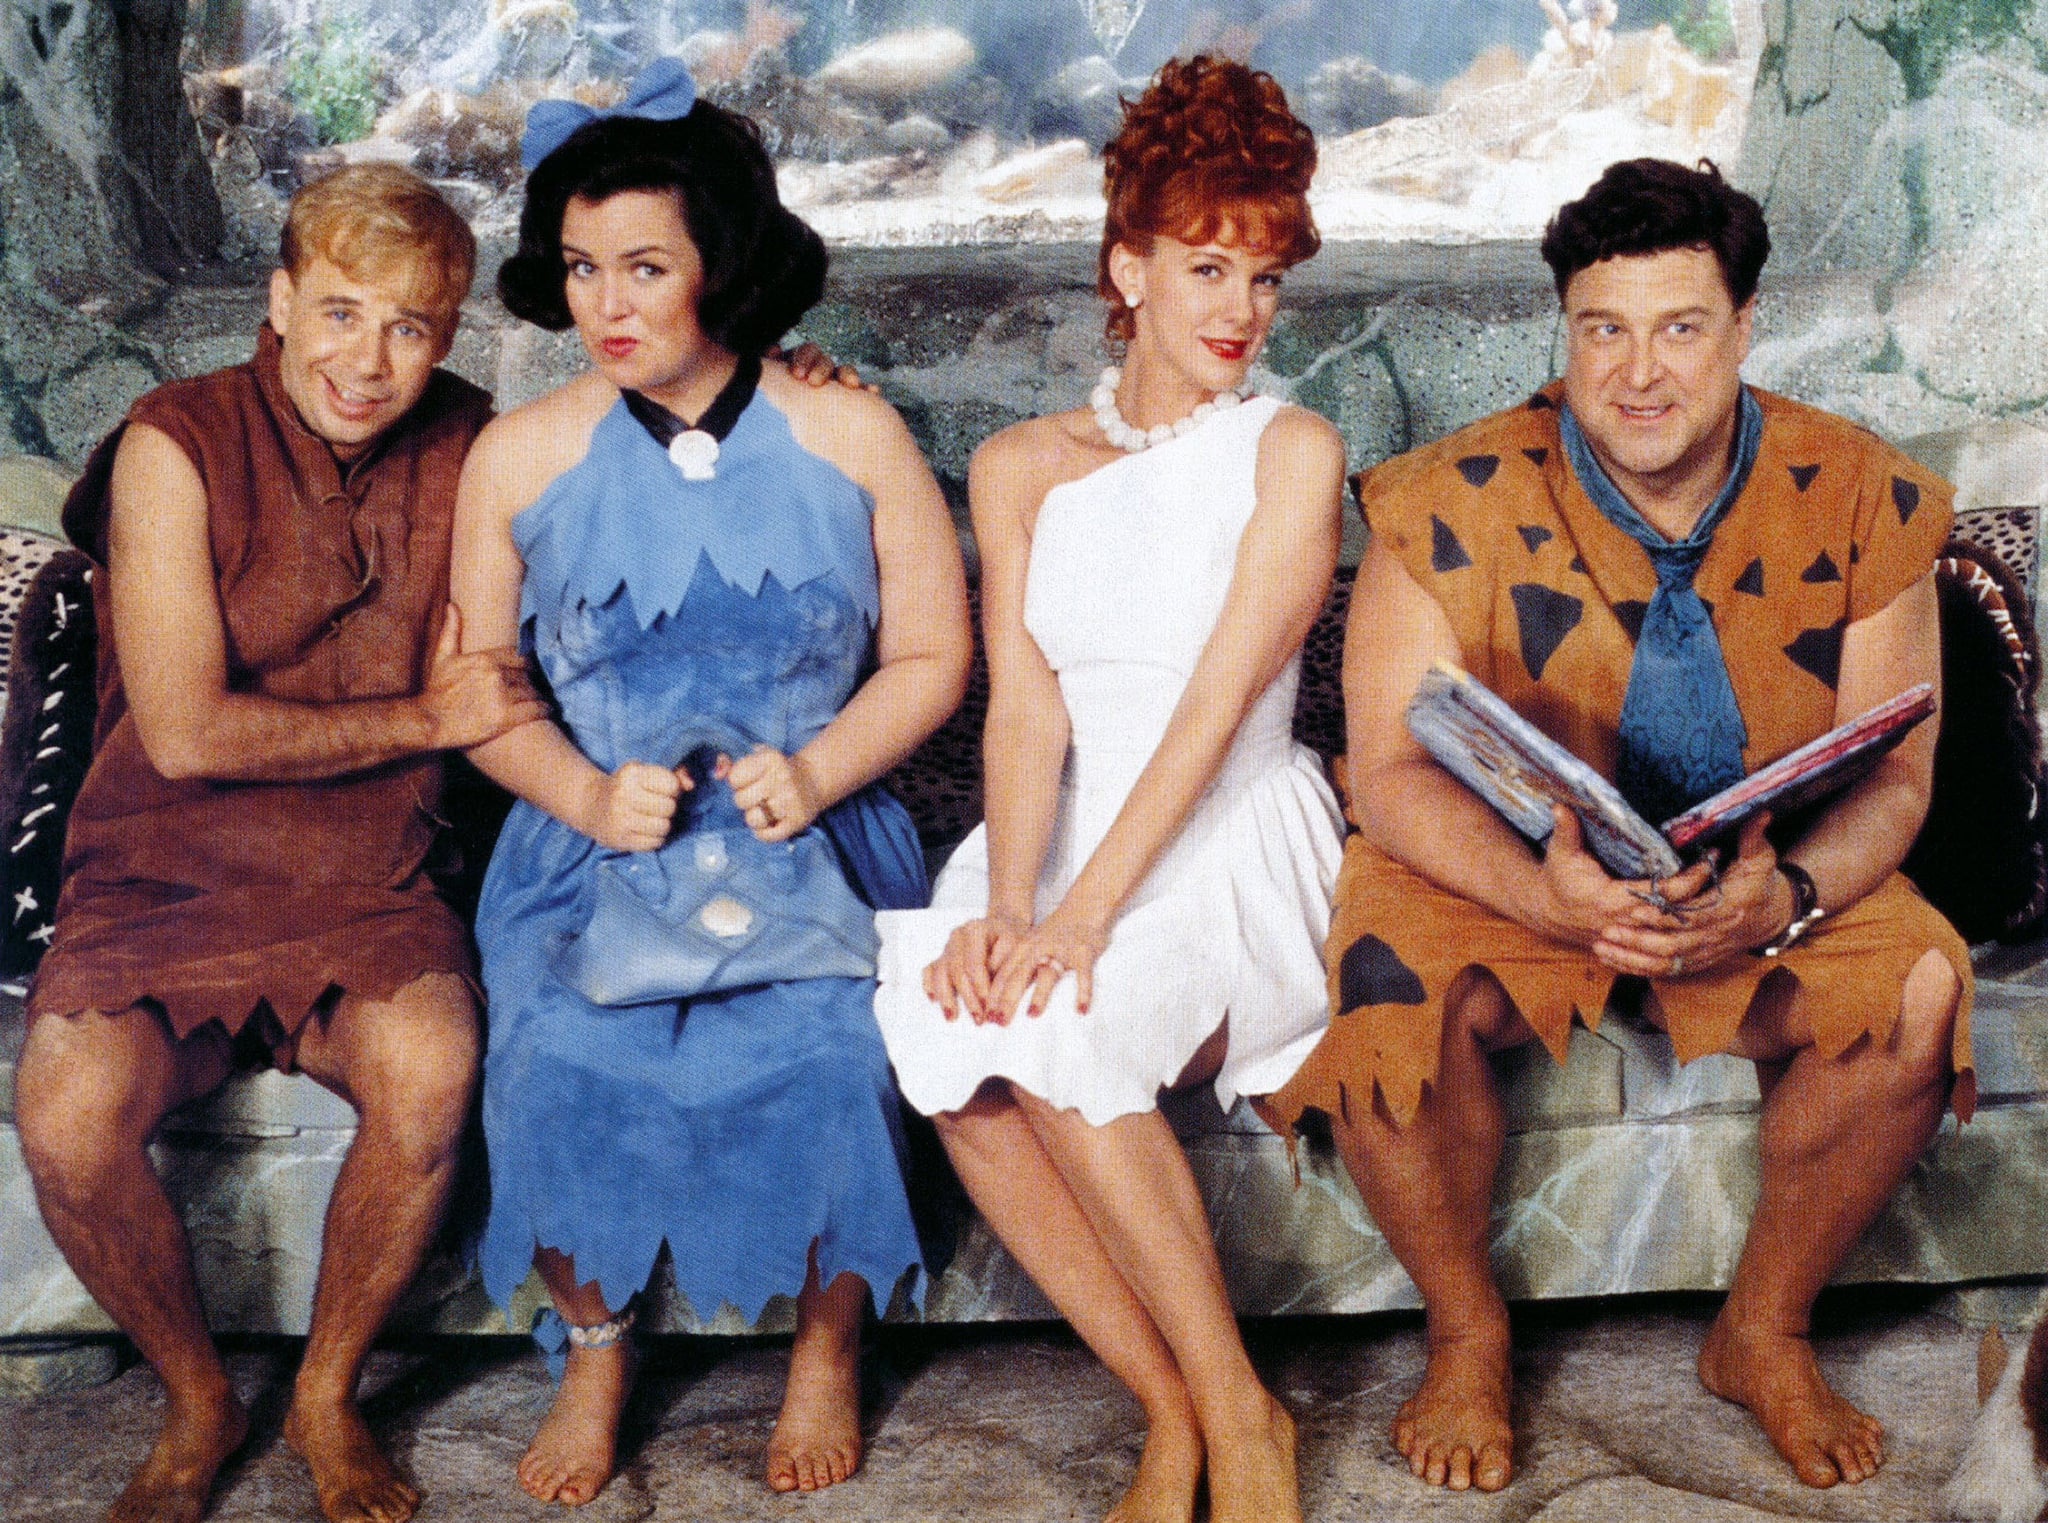 Barney and Betty Rubble (Rick Moranis and Rosie O'Donnell) and Wilma and Fred Flintstone (Elizabeth Perkins and John Goodman) in The Flintstones (1994)